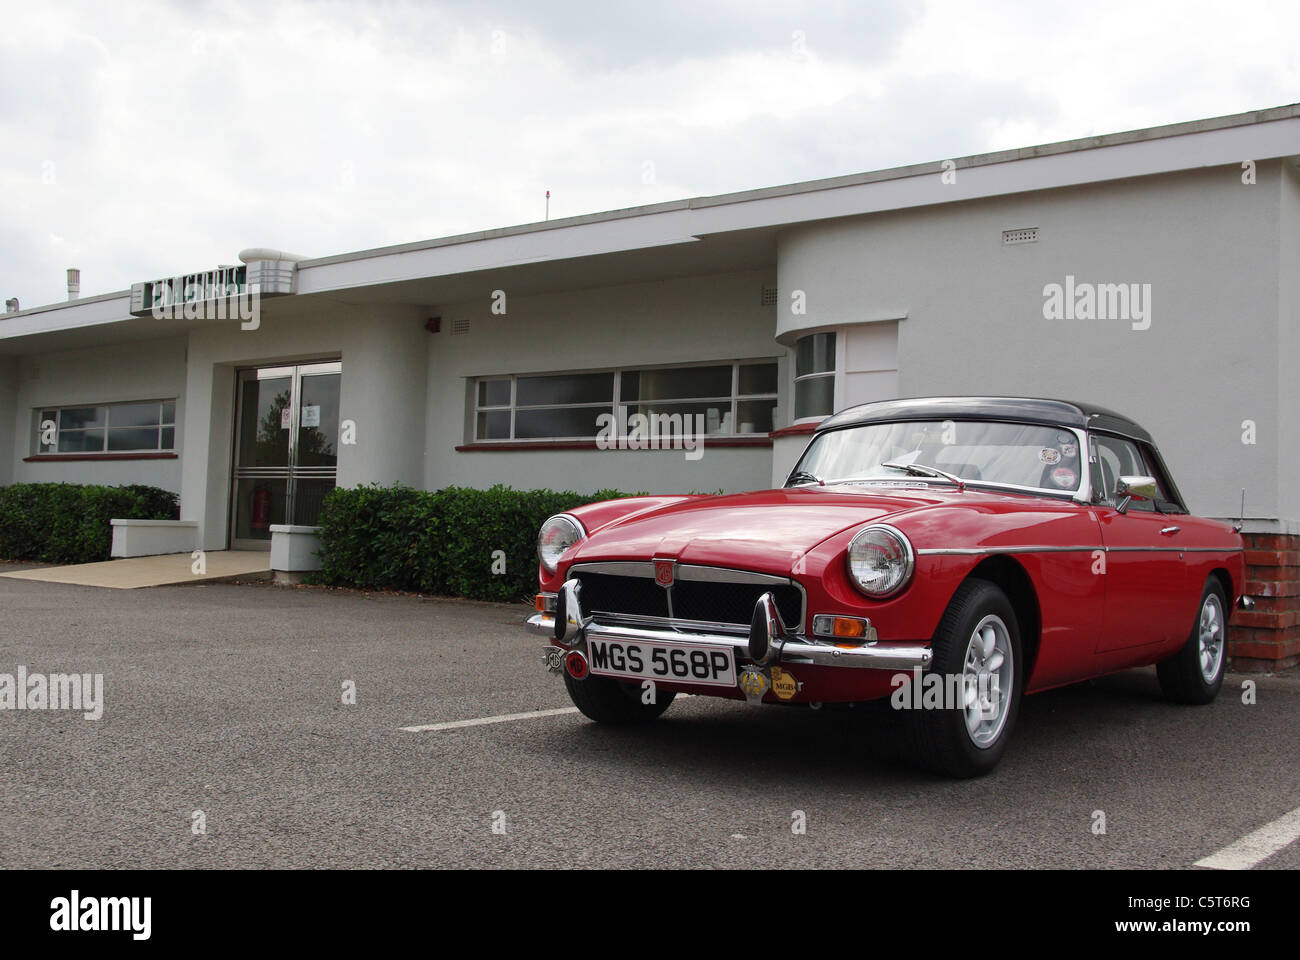 Red MG sports car pictured outside the Aviator hotel at Sywell Aerodrome - Stock Image